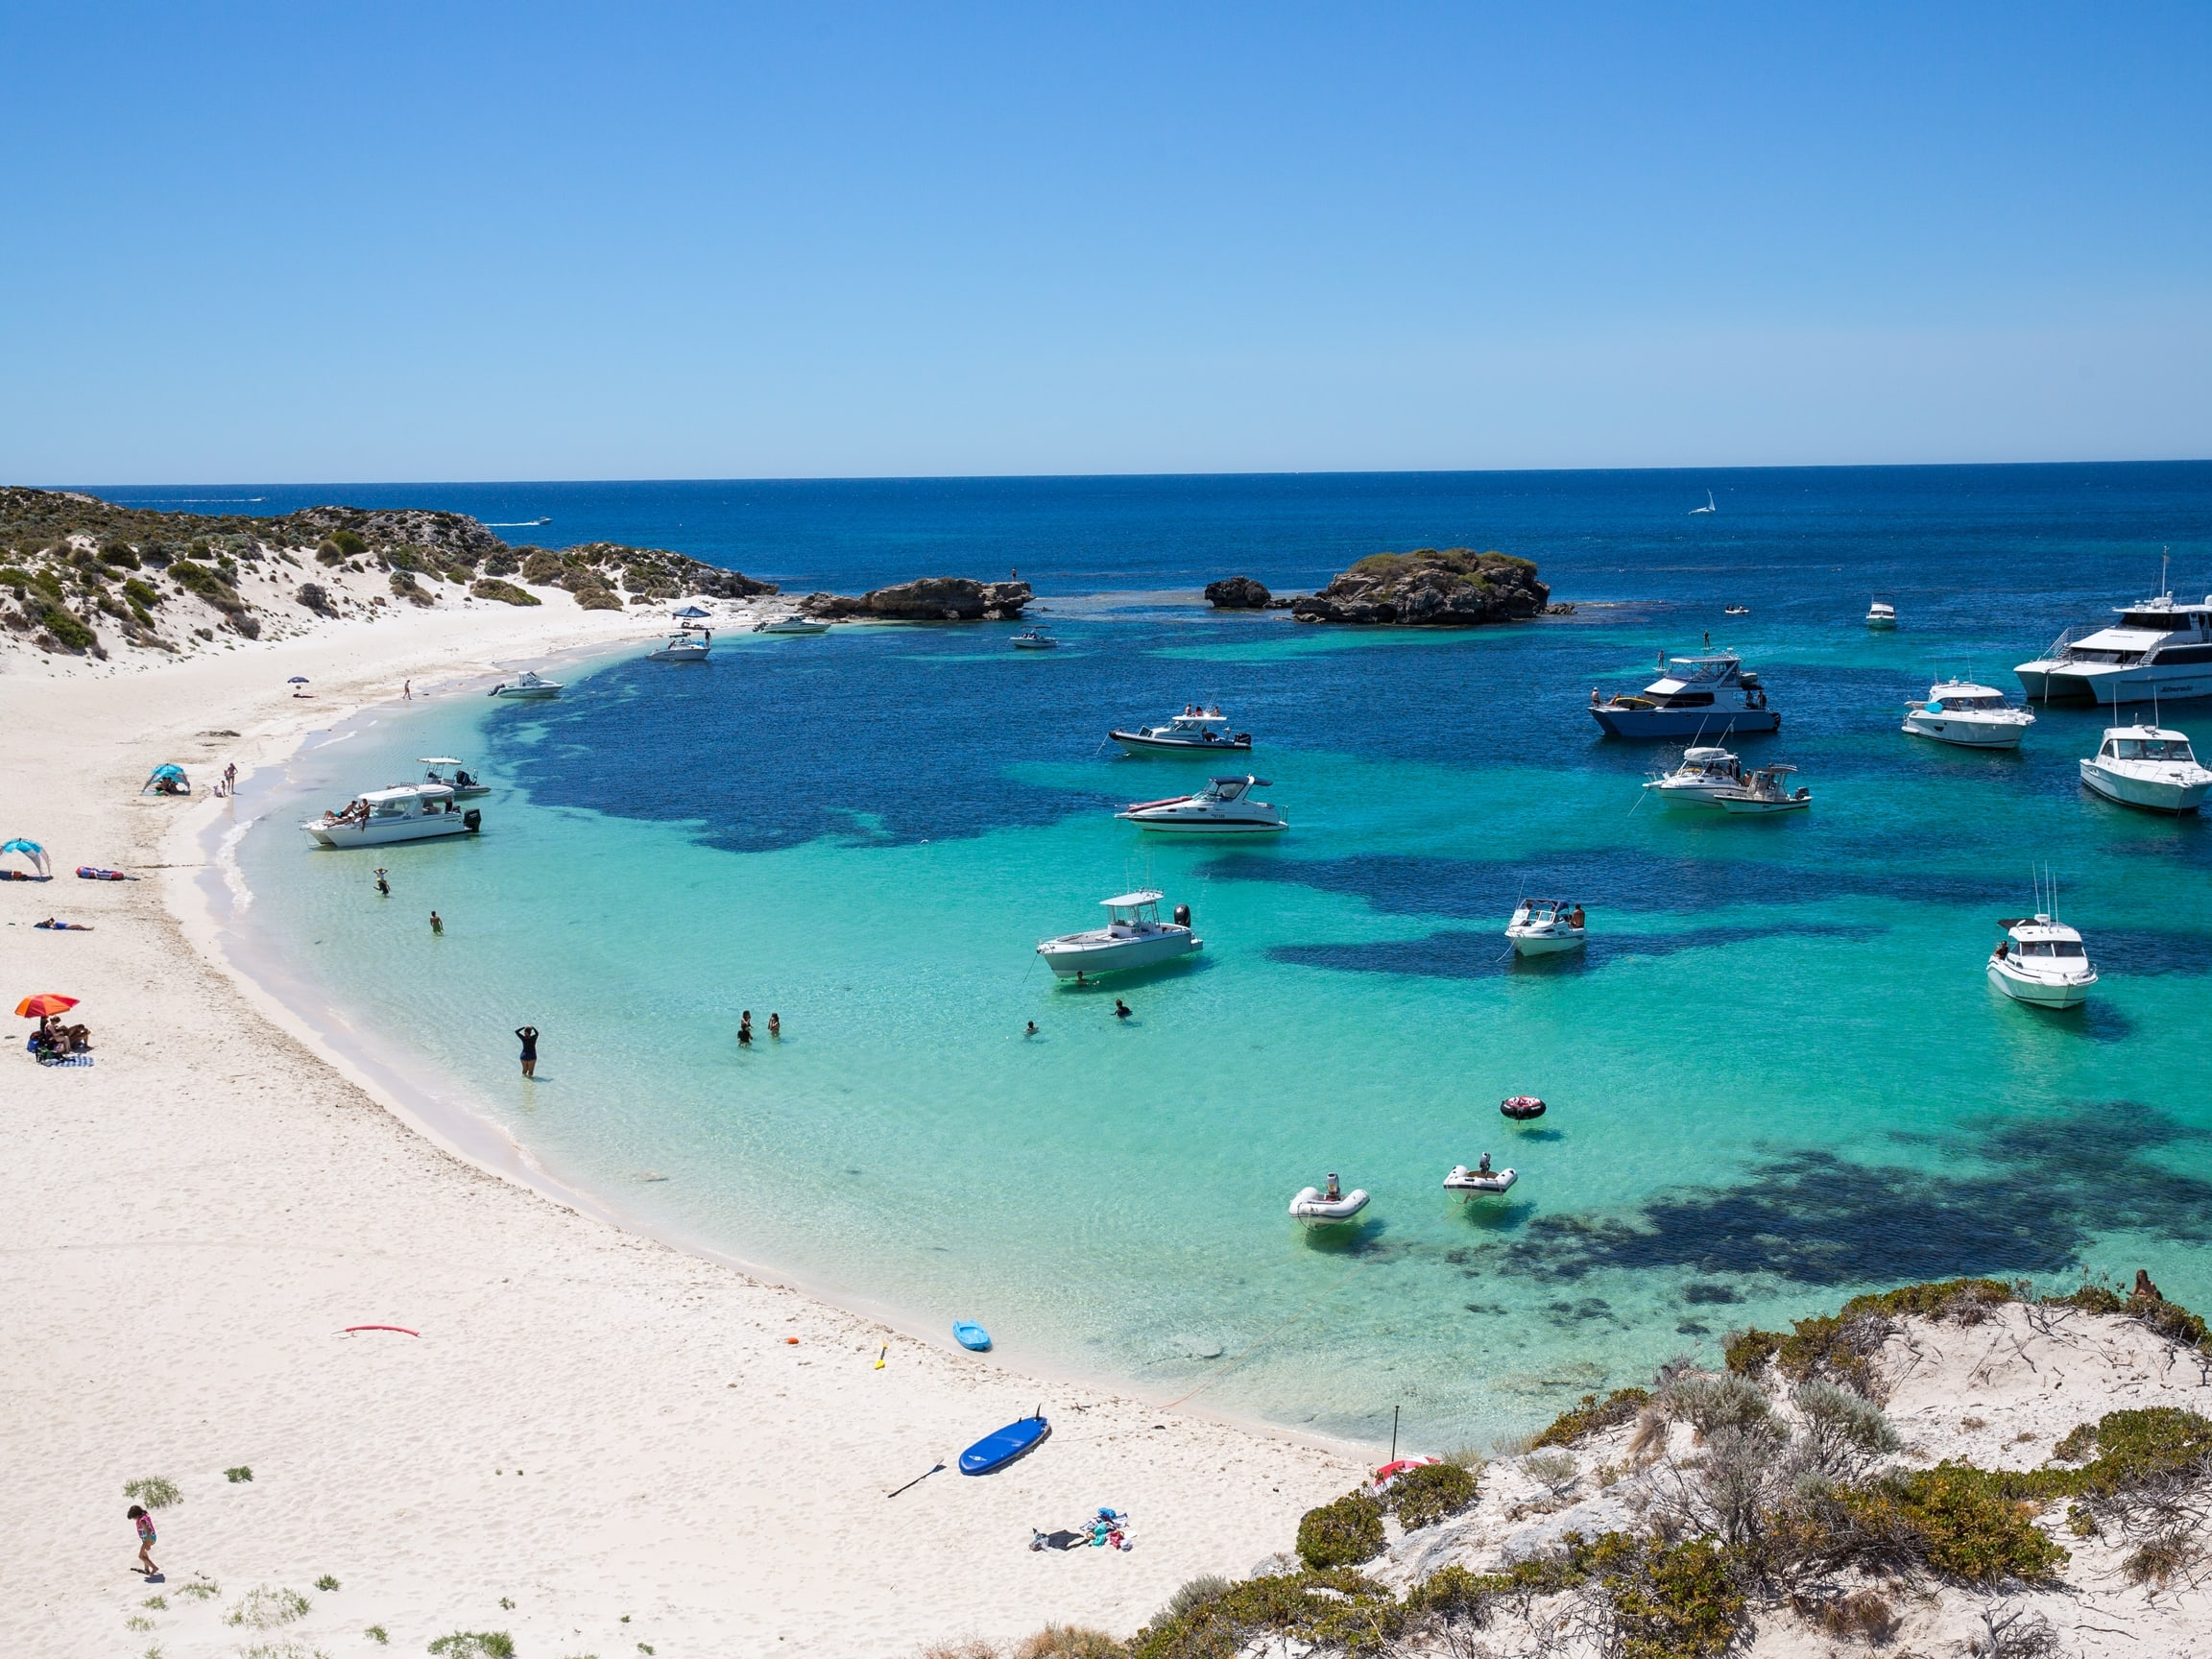 Half Day Rottnest Island Tour With Low Level Flight From